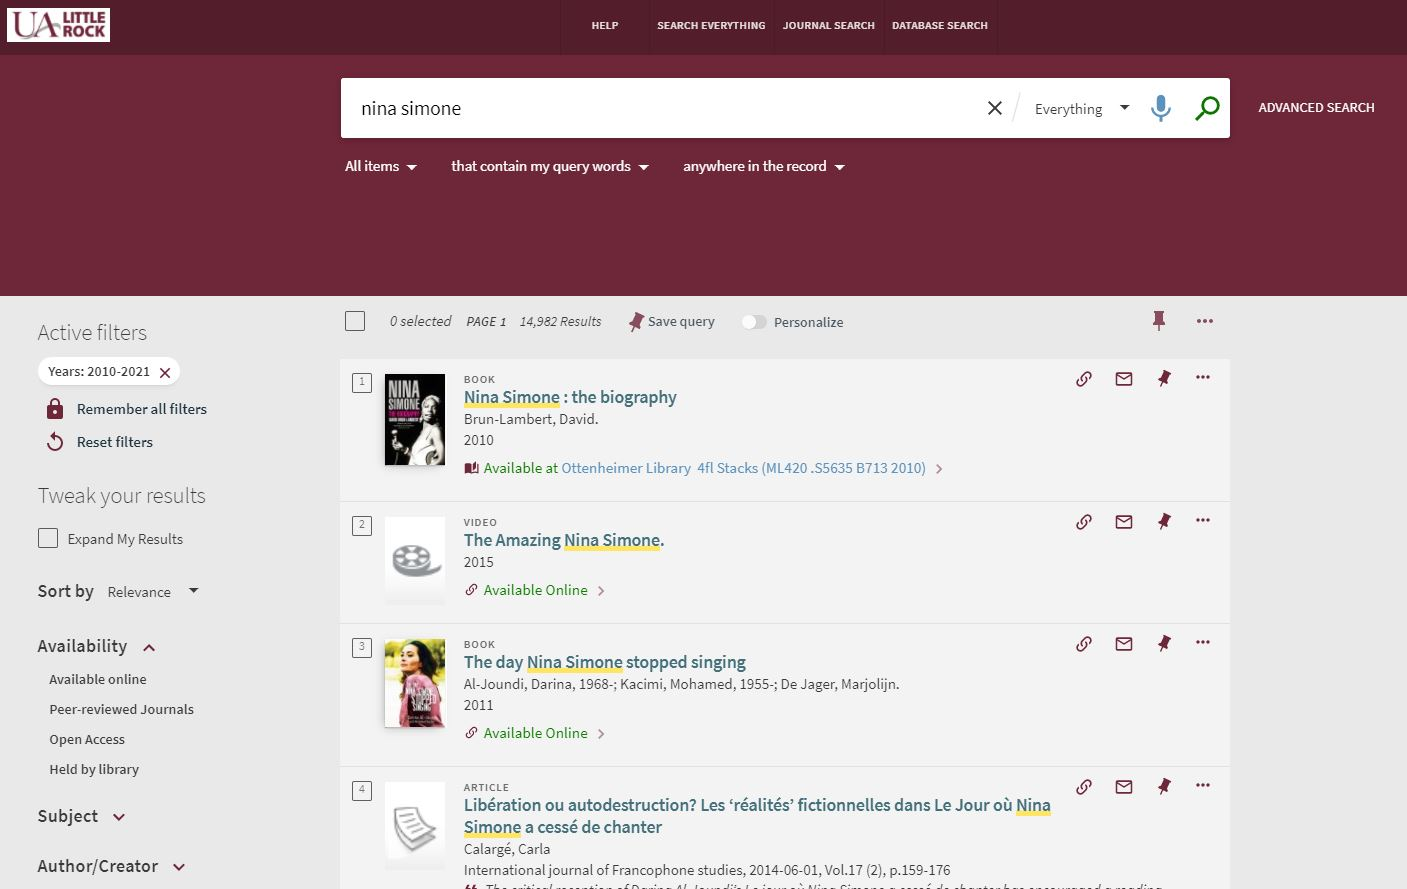 """Screen picture shows Primo System being used to search for """"Nina Simone"""" related posts in the UALR Library database."""